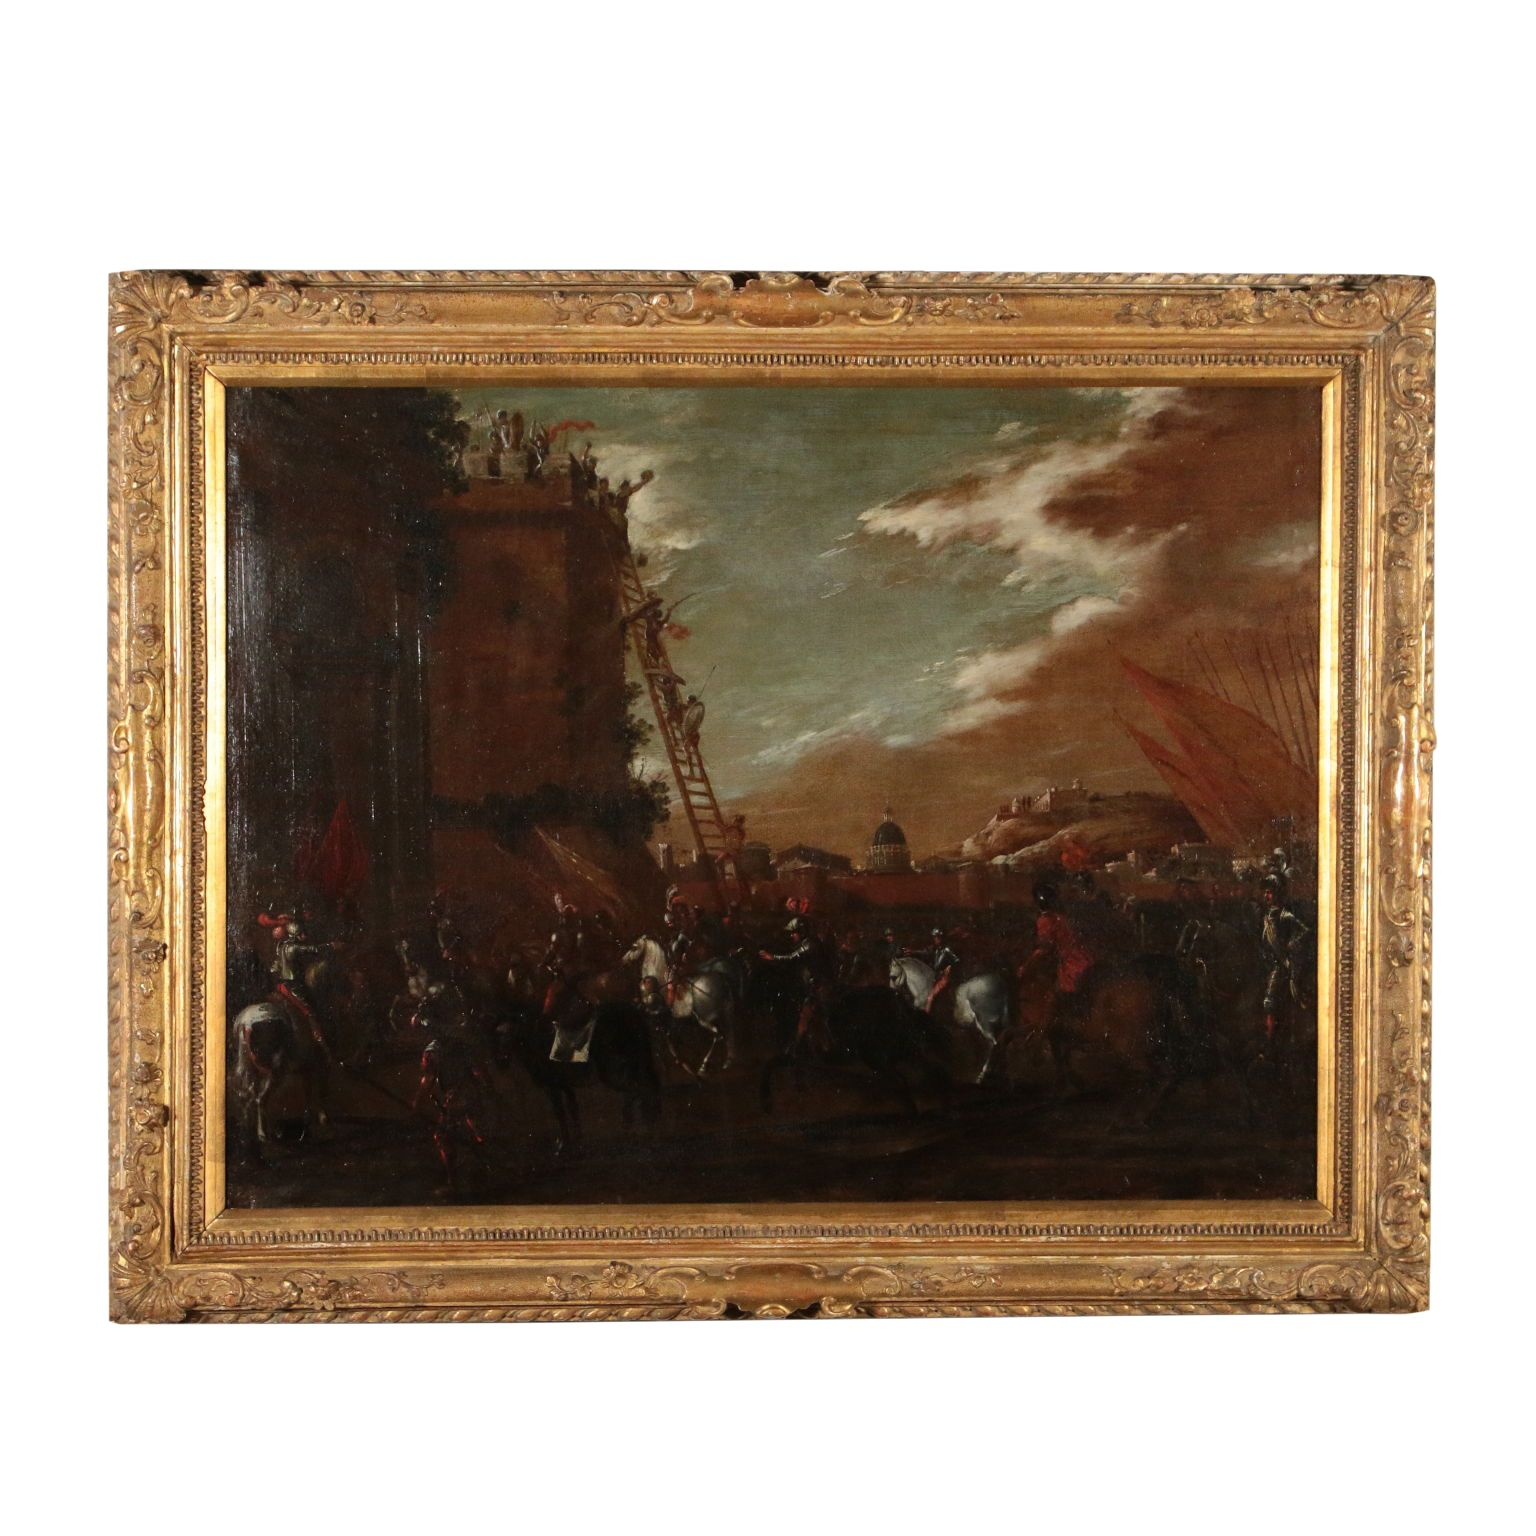 Siege Scene Carlo Coppola Setting of Oil Painting 17th Century